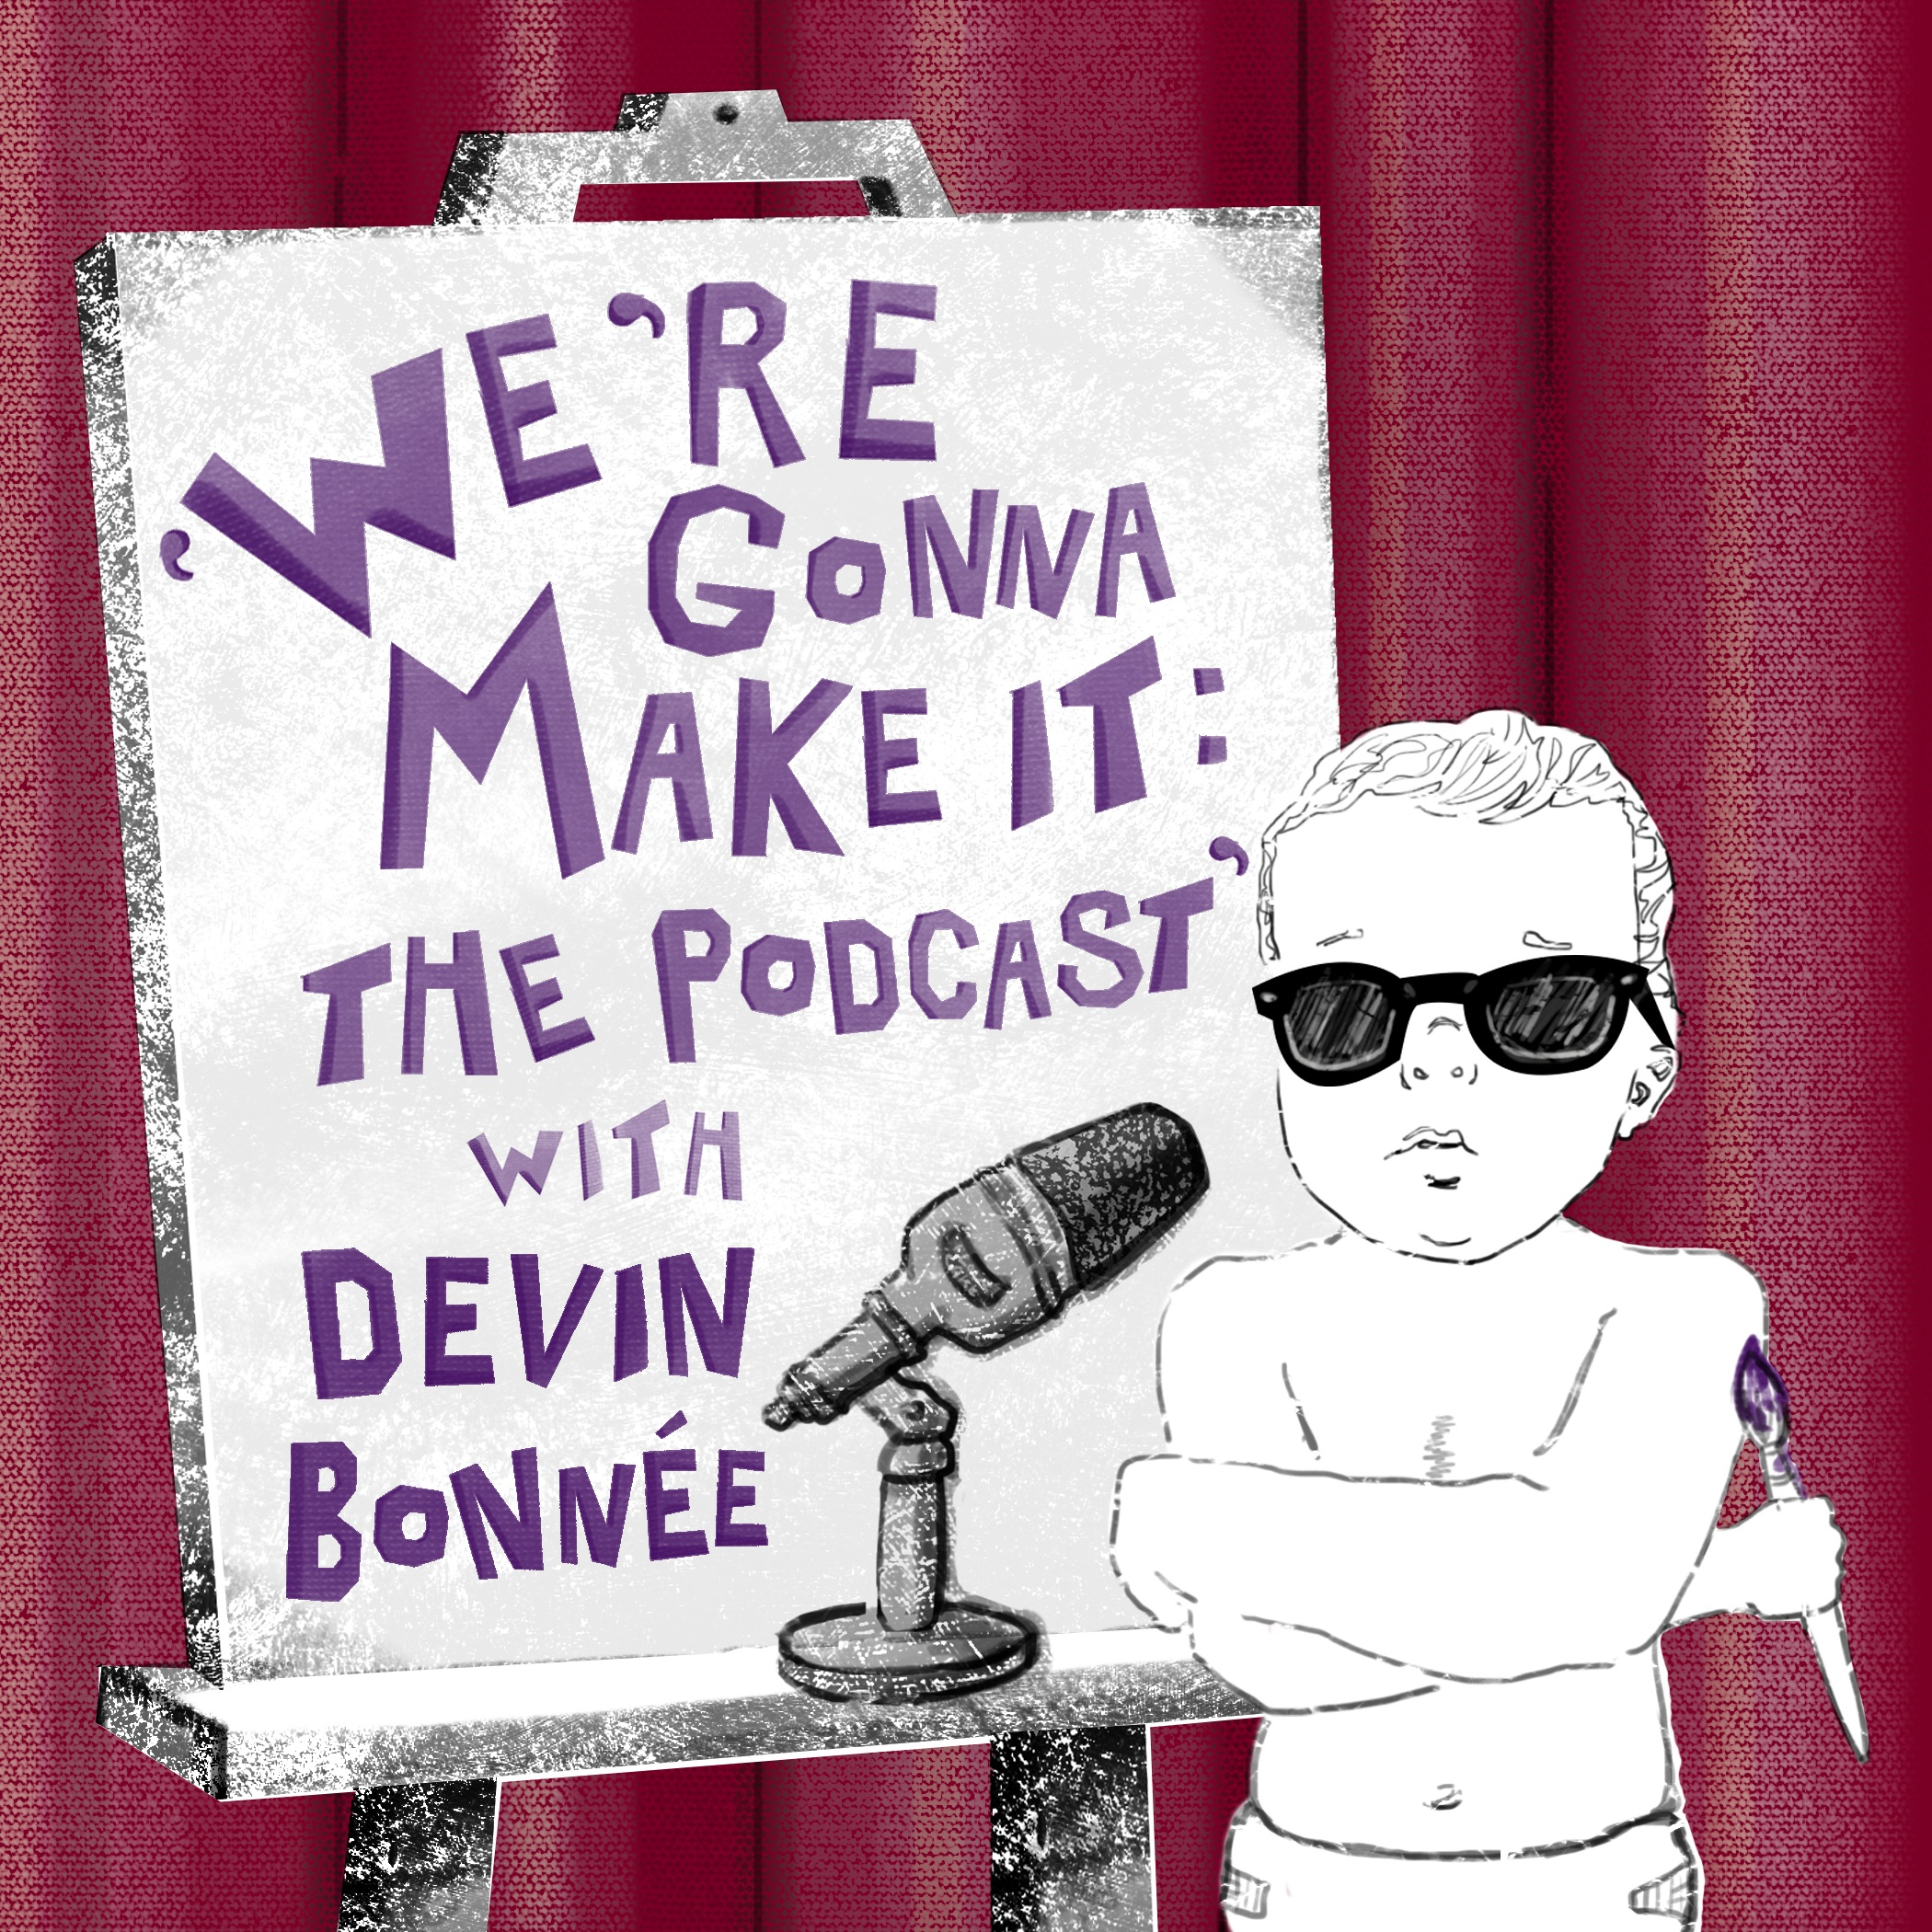 We're Gonna Make It! The Podcast